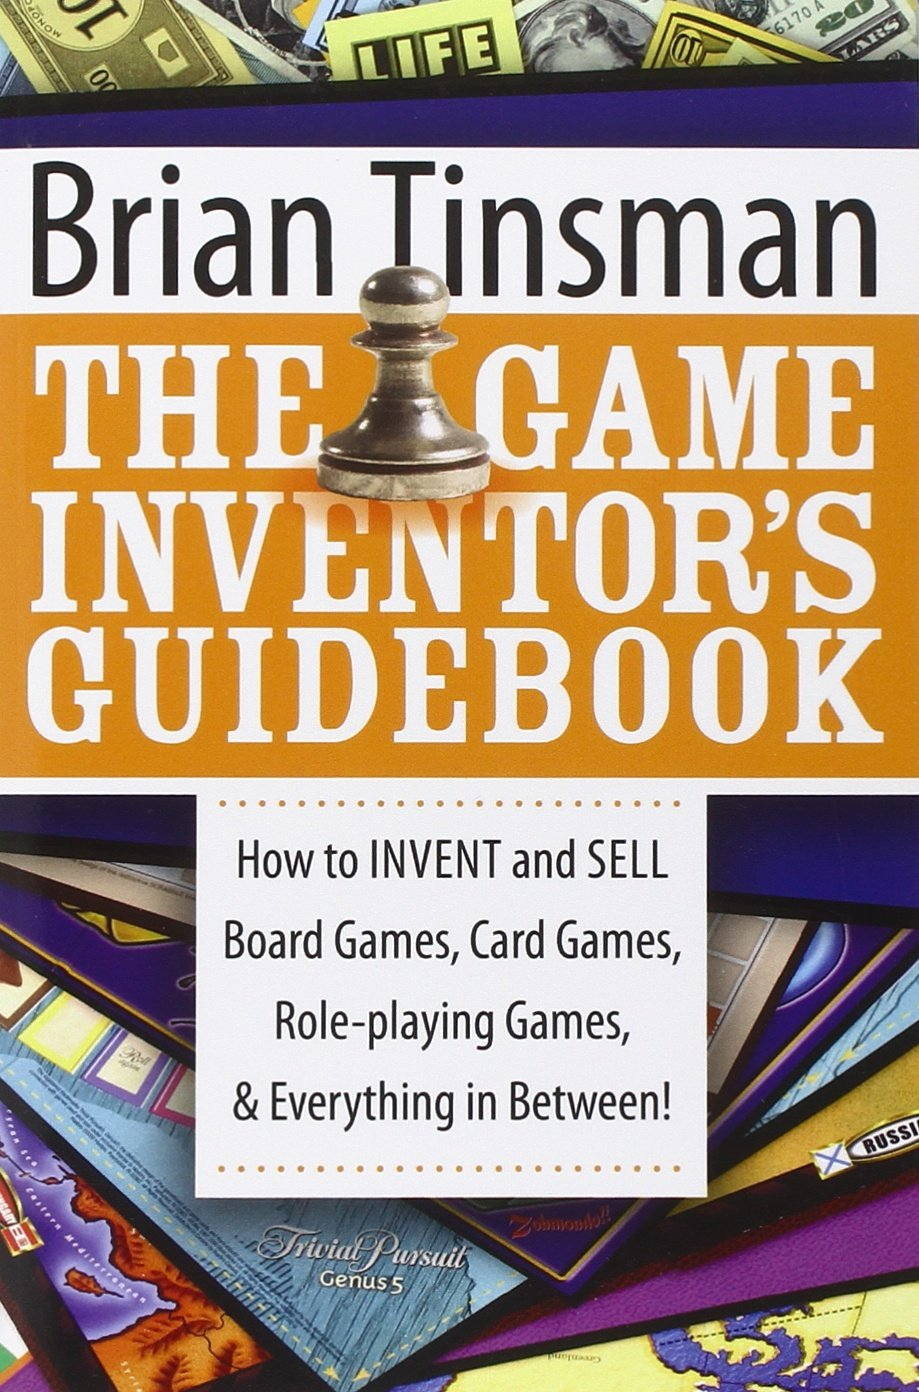 How to invent